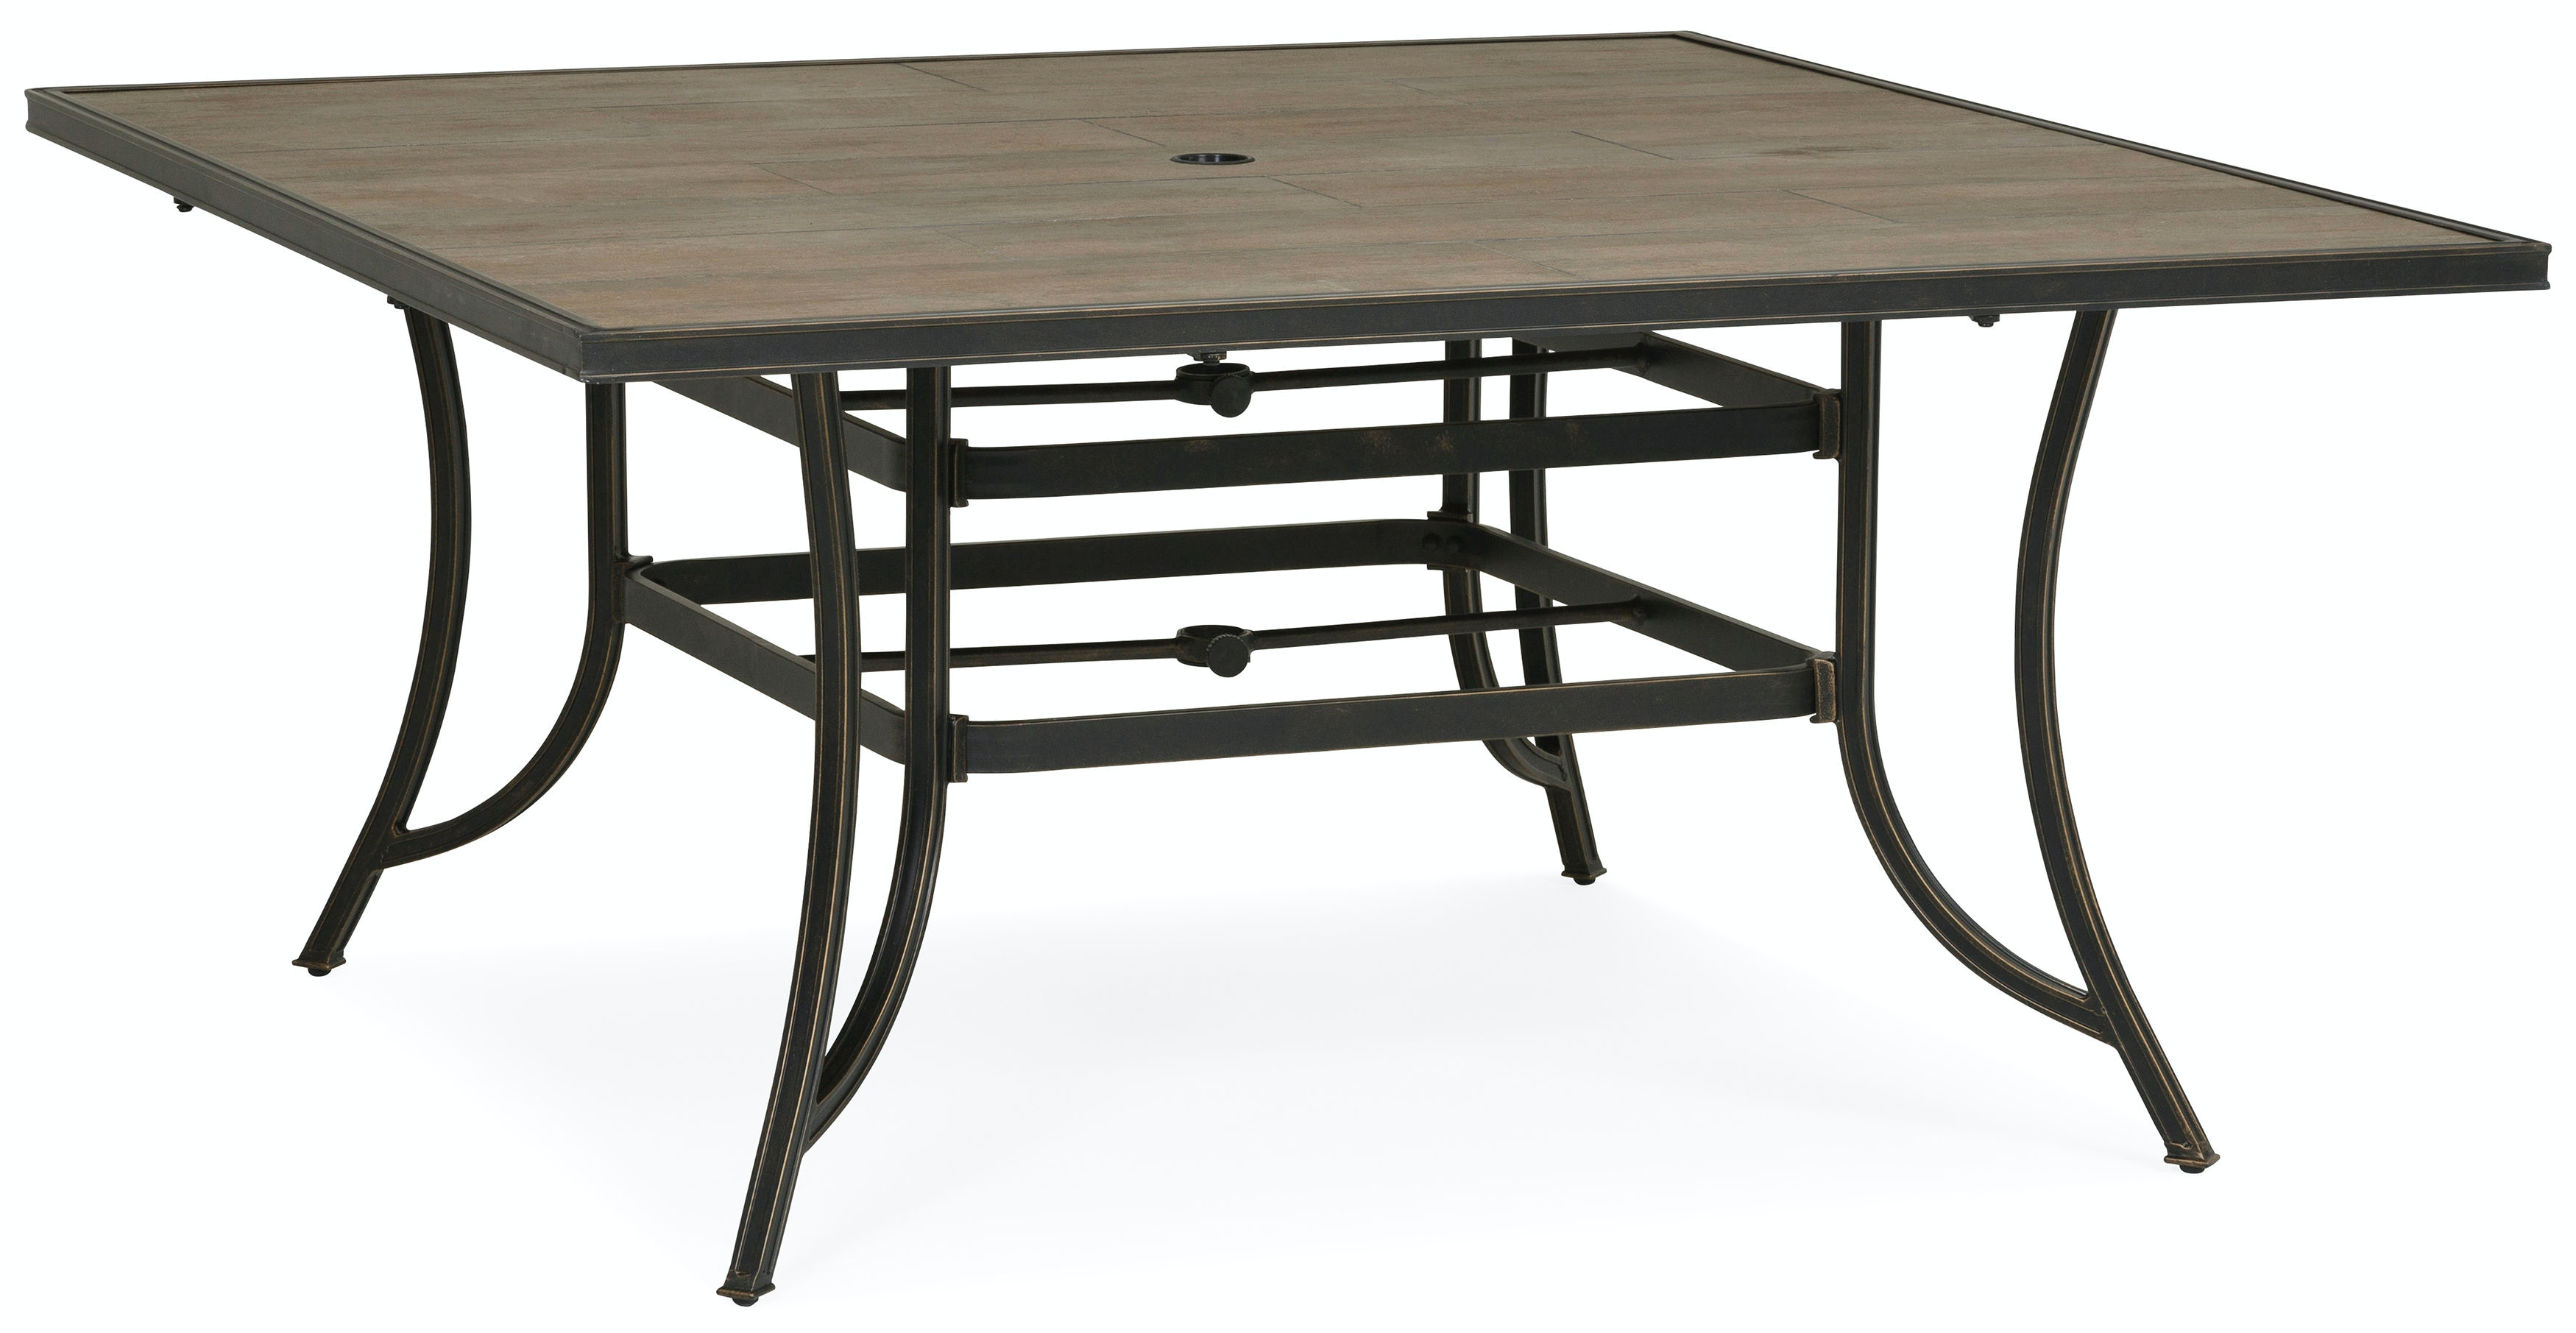 Exceptionnel Sonora Outdoor Square Dining Table   TOBACCO TILE